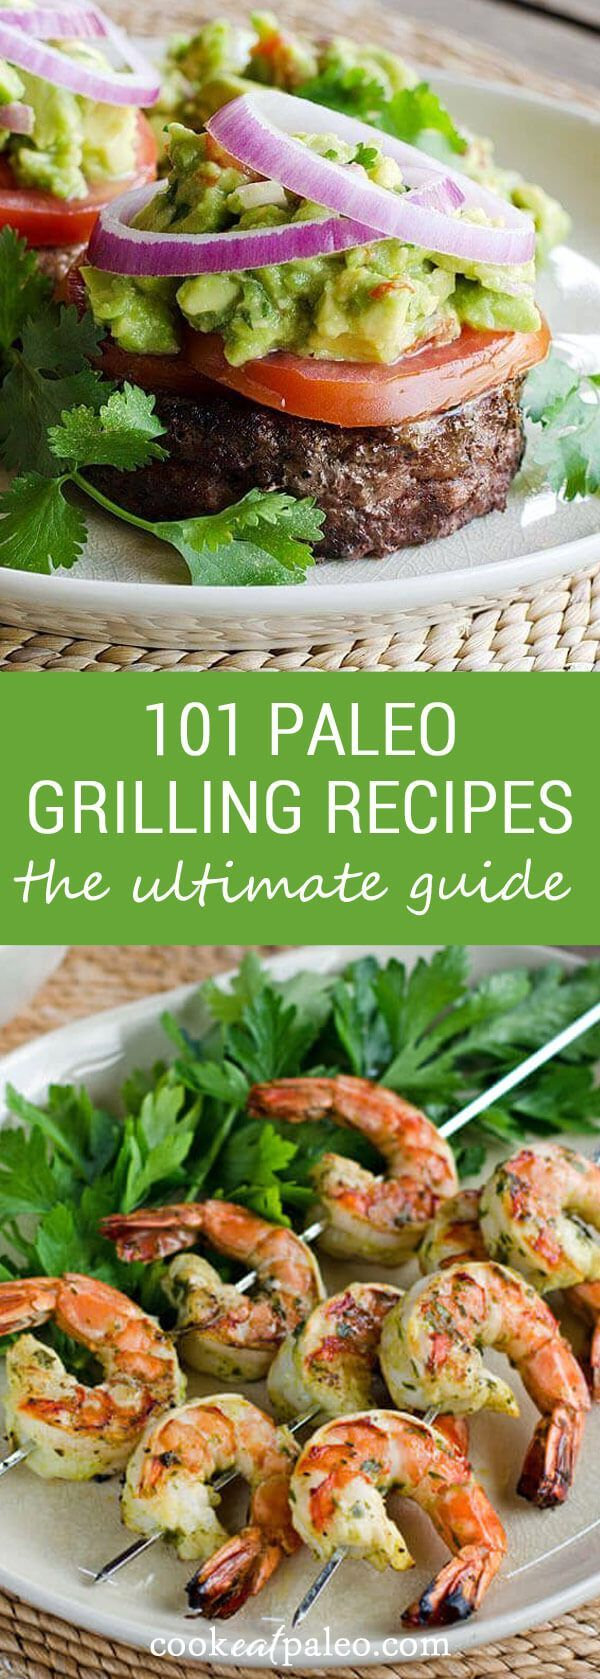 Or maybe you are just enjoying the warm weather on a busy weeknight, and you want a grilled meal in no time. These juicy, flavorful recipes—all made in under 25 minutes—will not disappoint at any of your upcoming summer festivities.